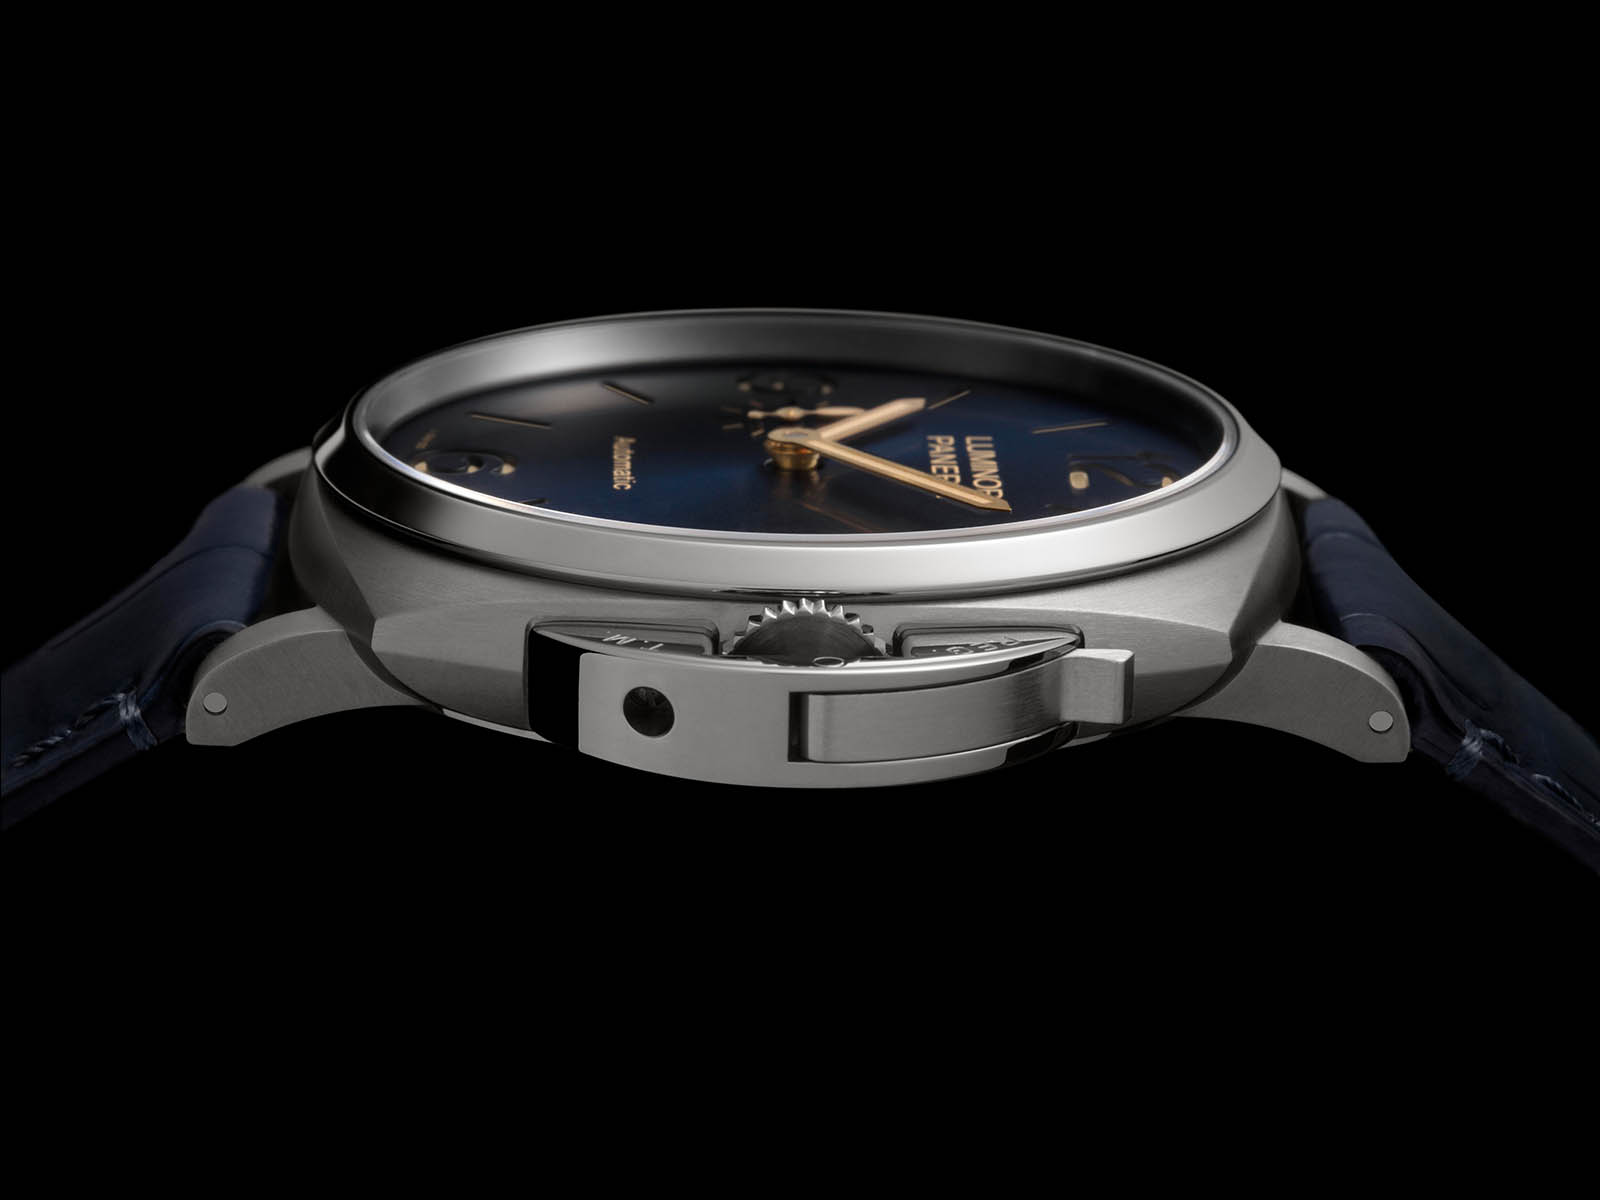 panerai-luminor-due-pam00729-1.jpg